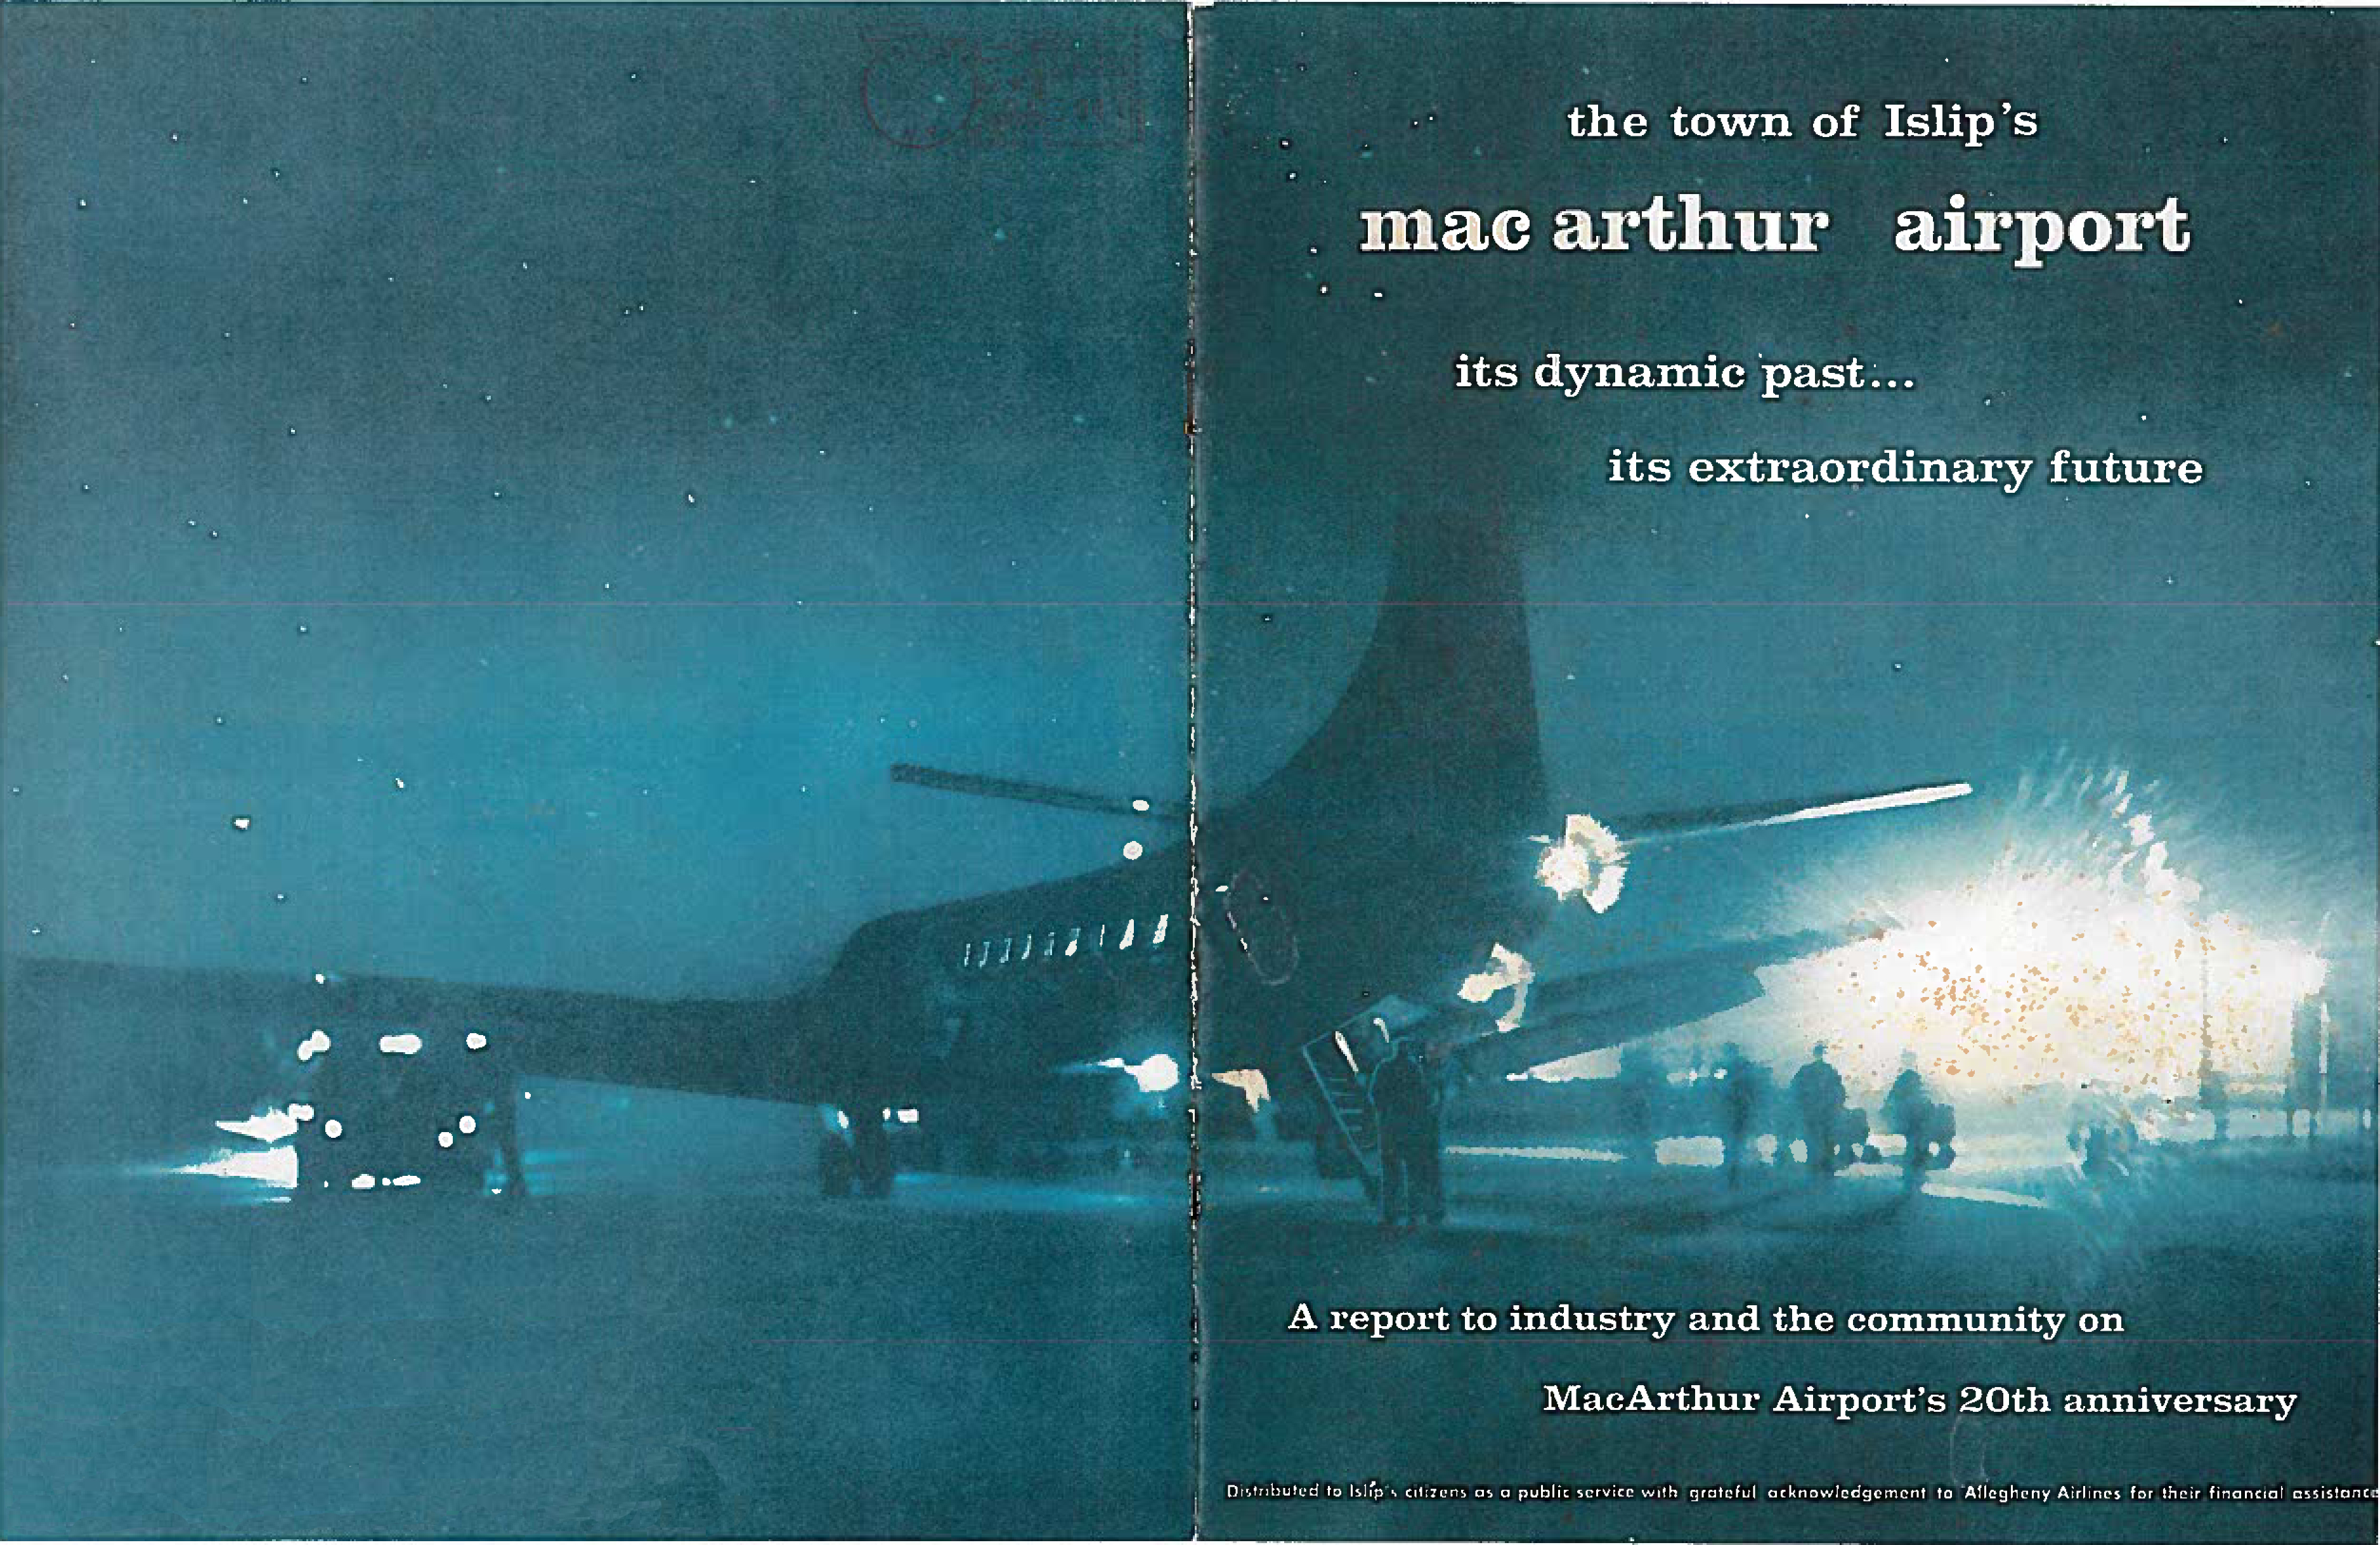 This image leads to a PDF of a booklet describing MacArthur Airport's 20th anniversary